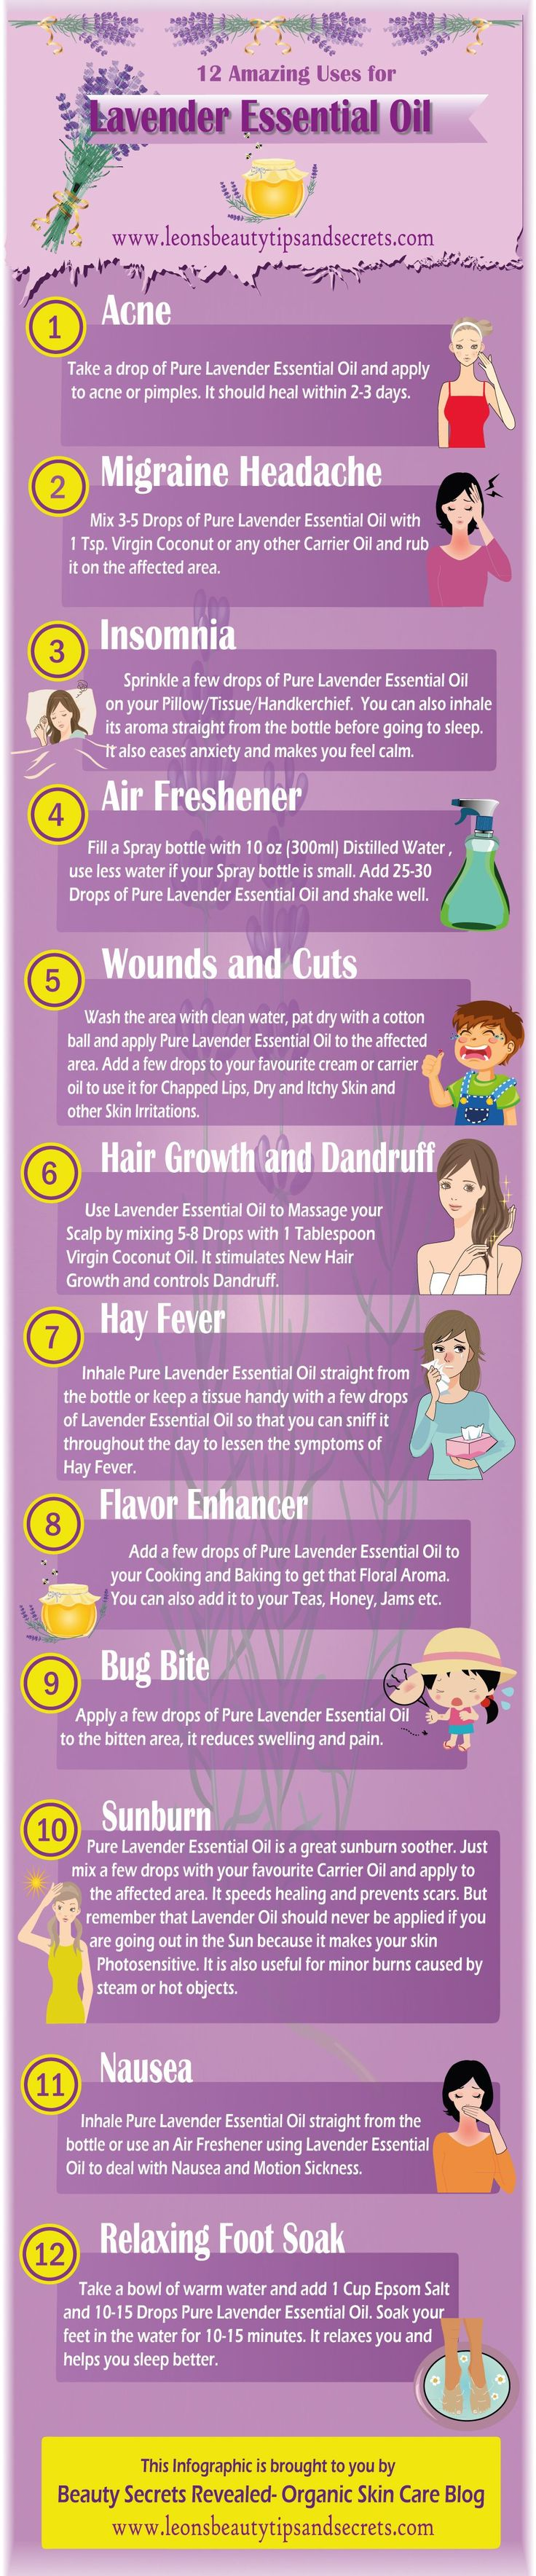 12 Amazing Uses for Lavender Essential Oil #Infographics